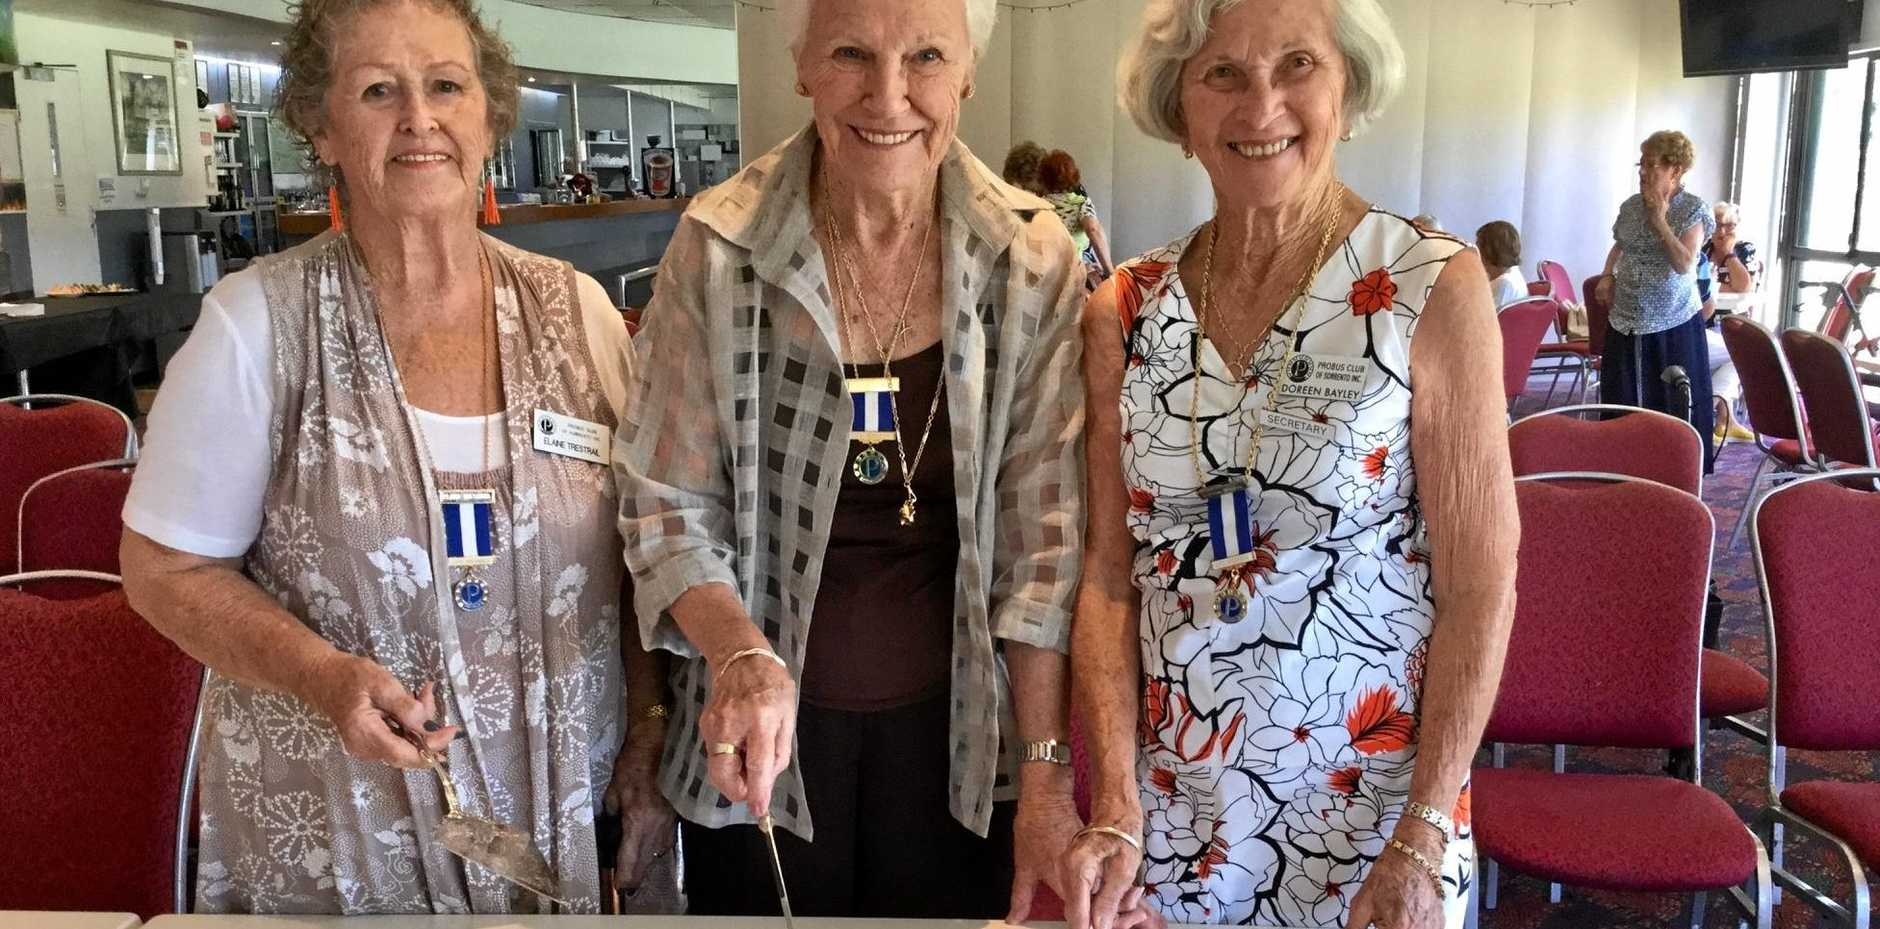 Sorrento Probus Club members recently celebrated their Silver anniversary with a delicious cake and lots of smiles.